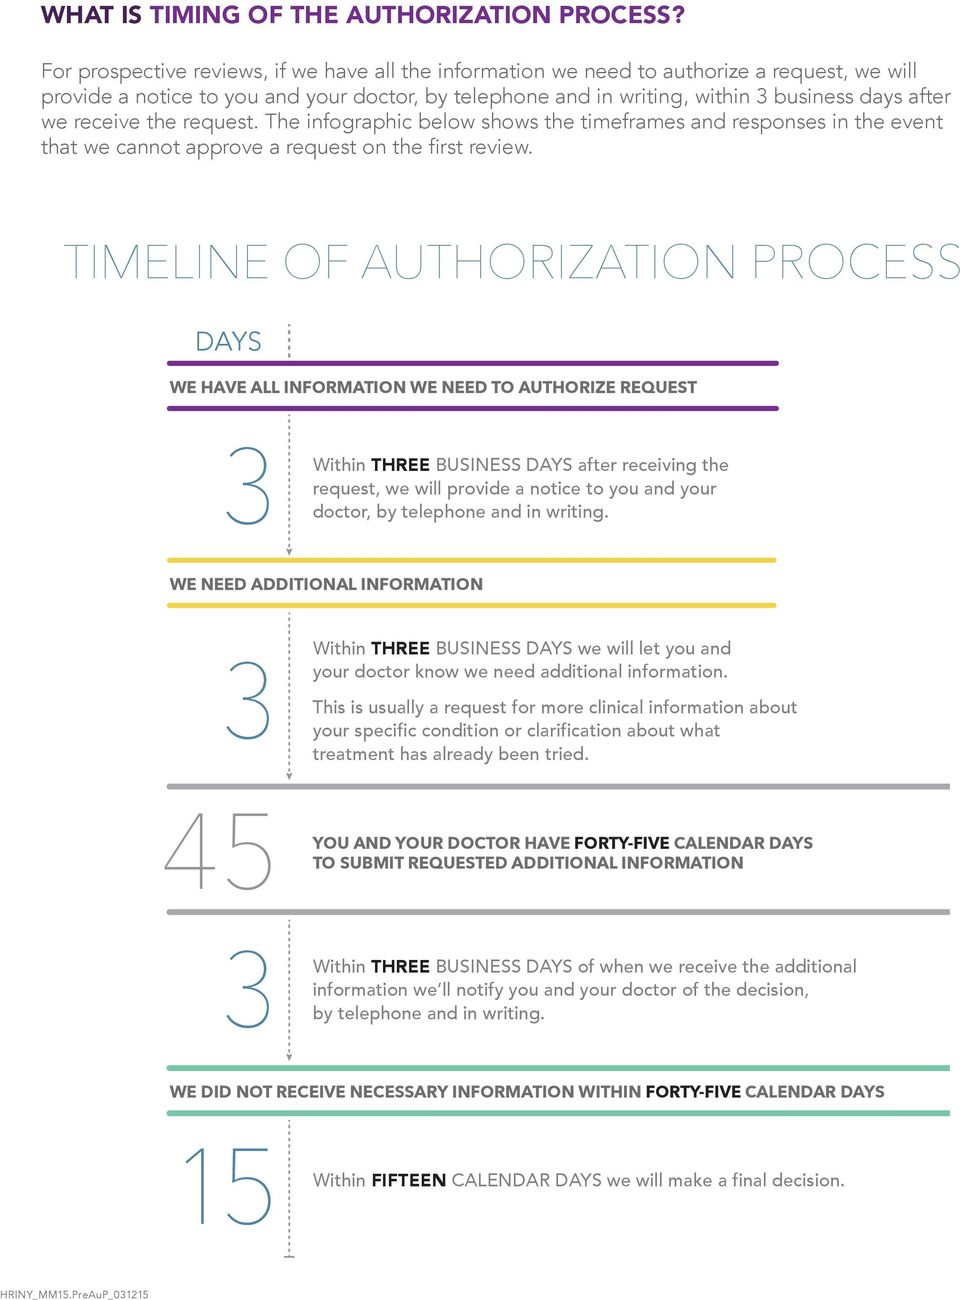 receive the request. The infographic below shows the timeframes and responses in the event that we cannot approve a request on the first review.